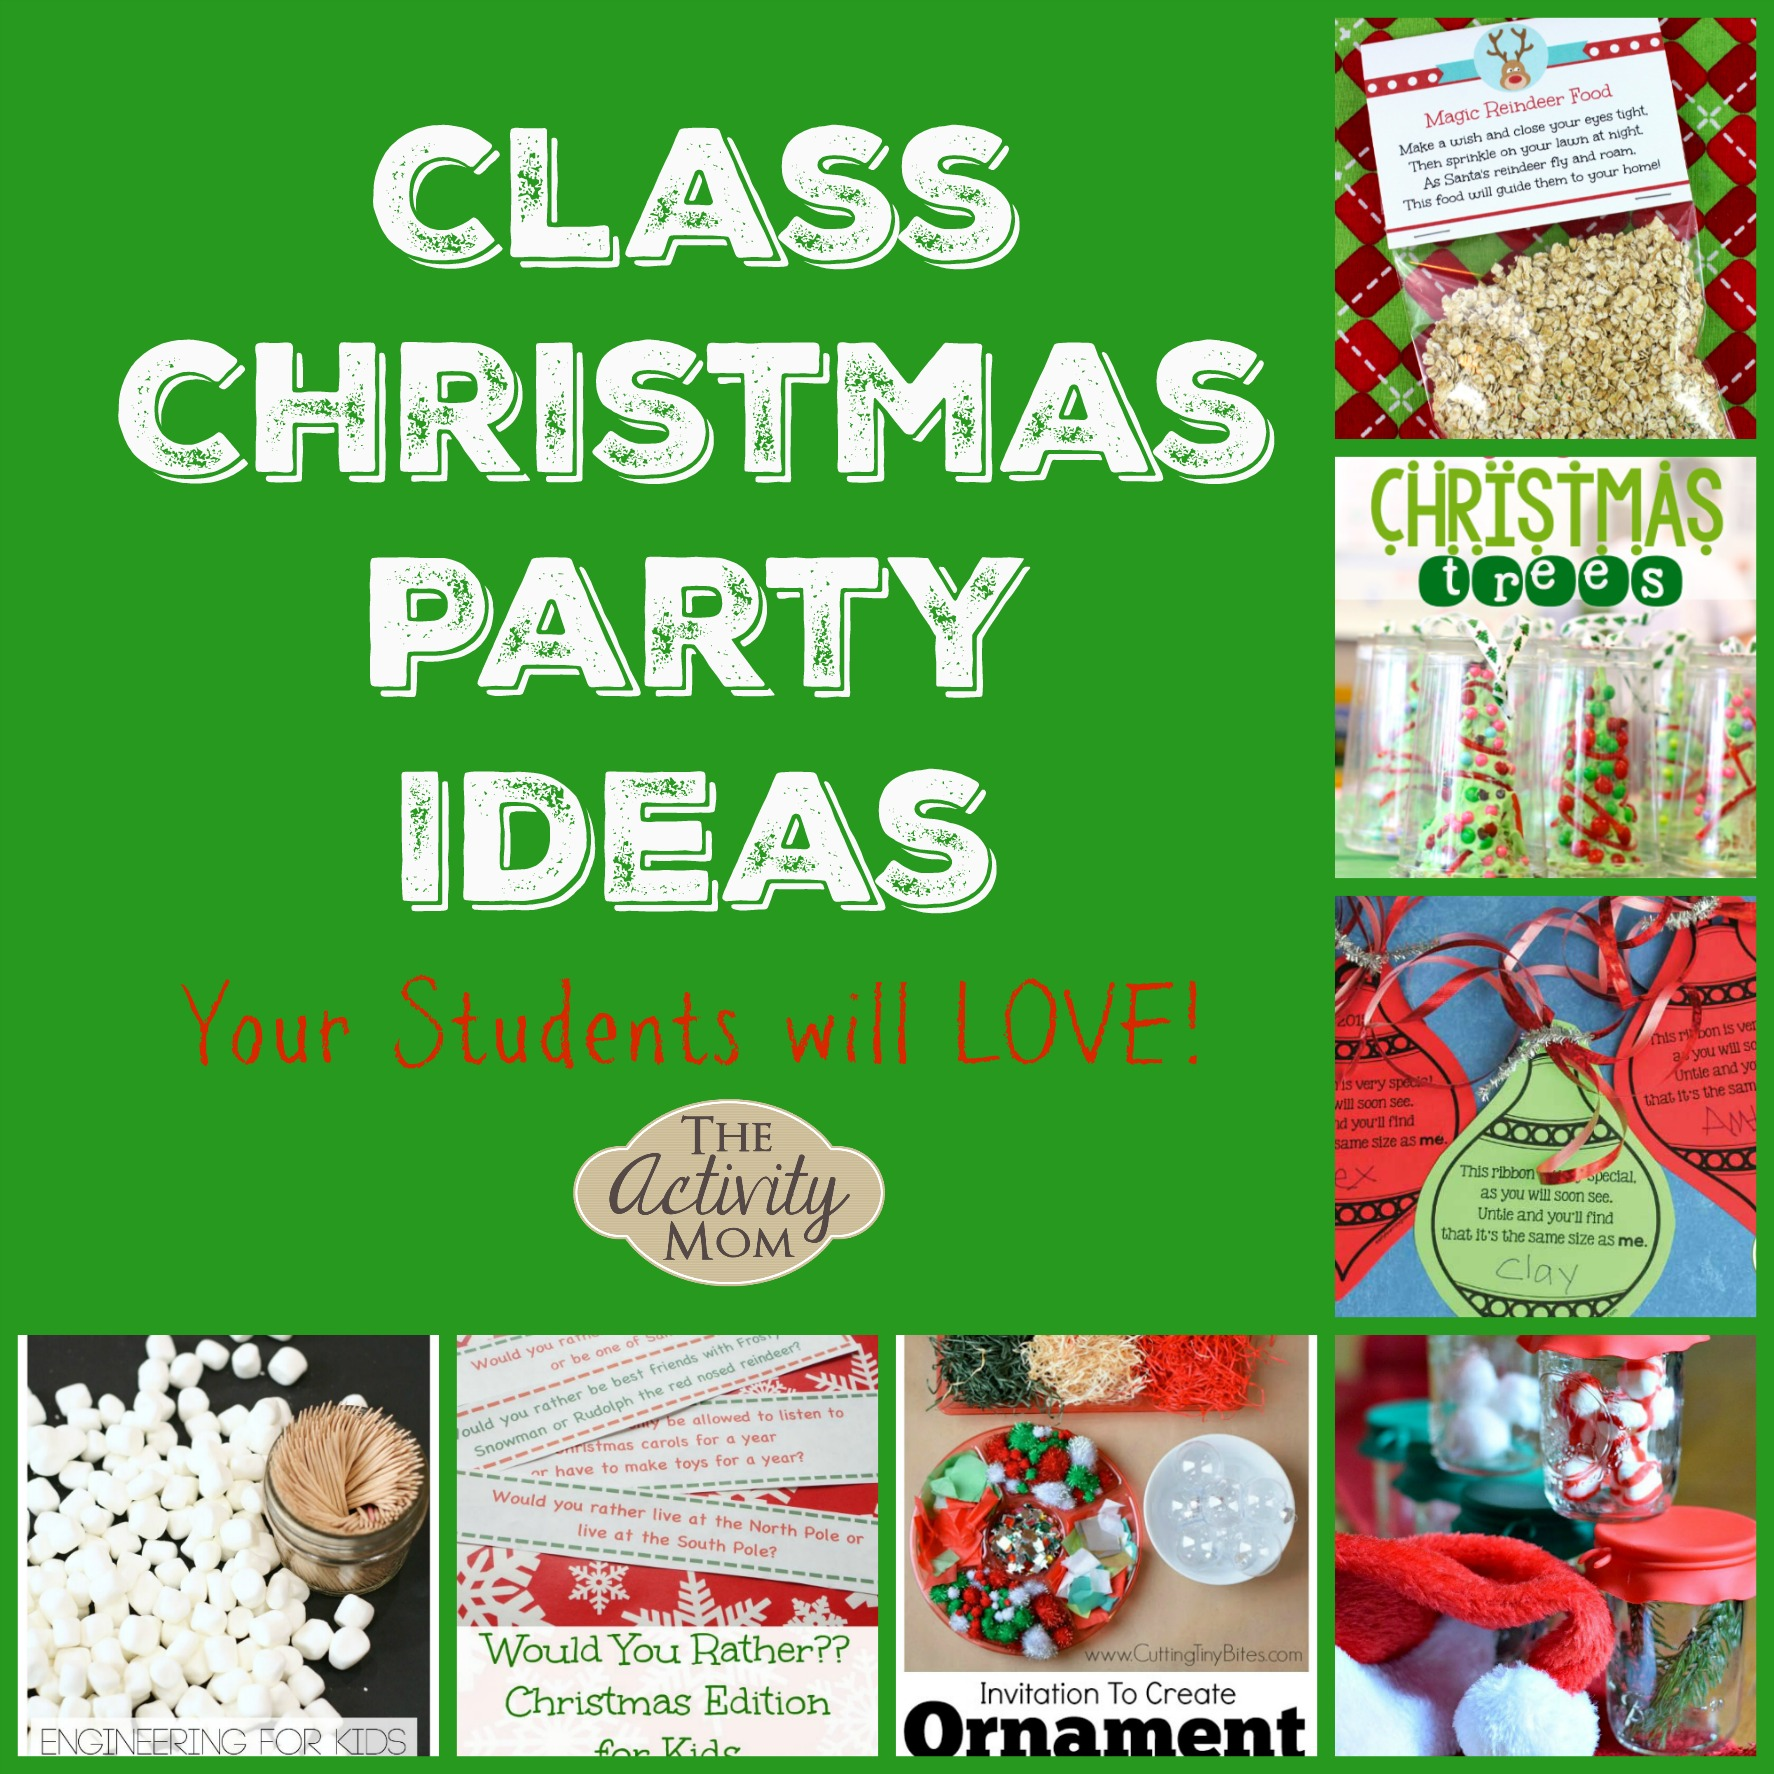 Christmas Party Ideas For School Part - 48: ... Party Ideas To Celebrate With On Their Last Day Of School Before  Vacation. Hereu0027s A Collection Of Class Christmas Party Ideas That Are Sure  To Be A Hit ...